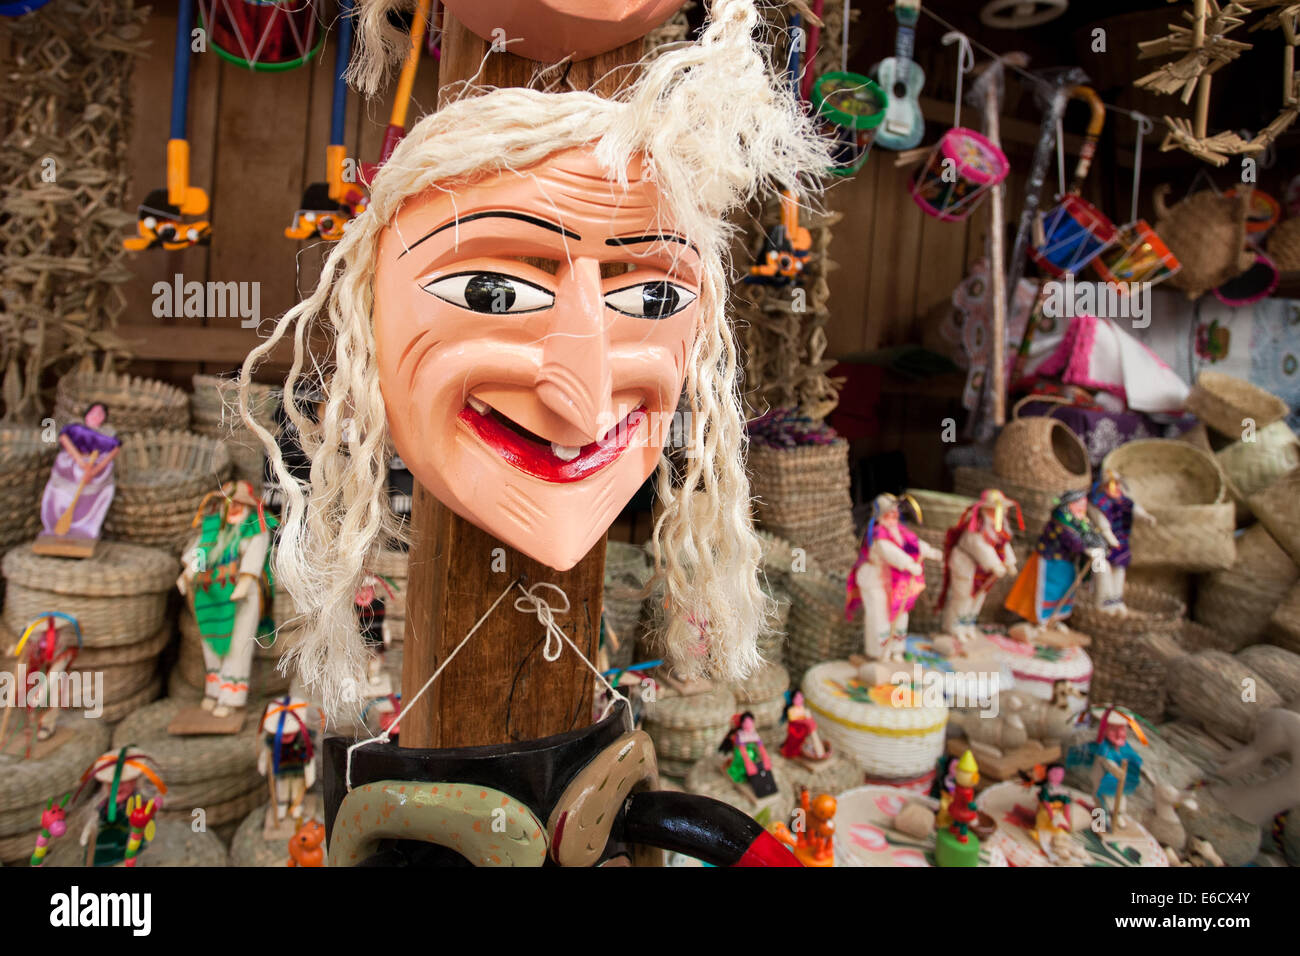 Bit of a bad hair day for a mask that is used in the popular Old Man's Dance in a market in Patzcuaro, Michoacan, - Stock Image